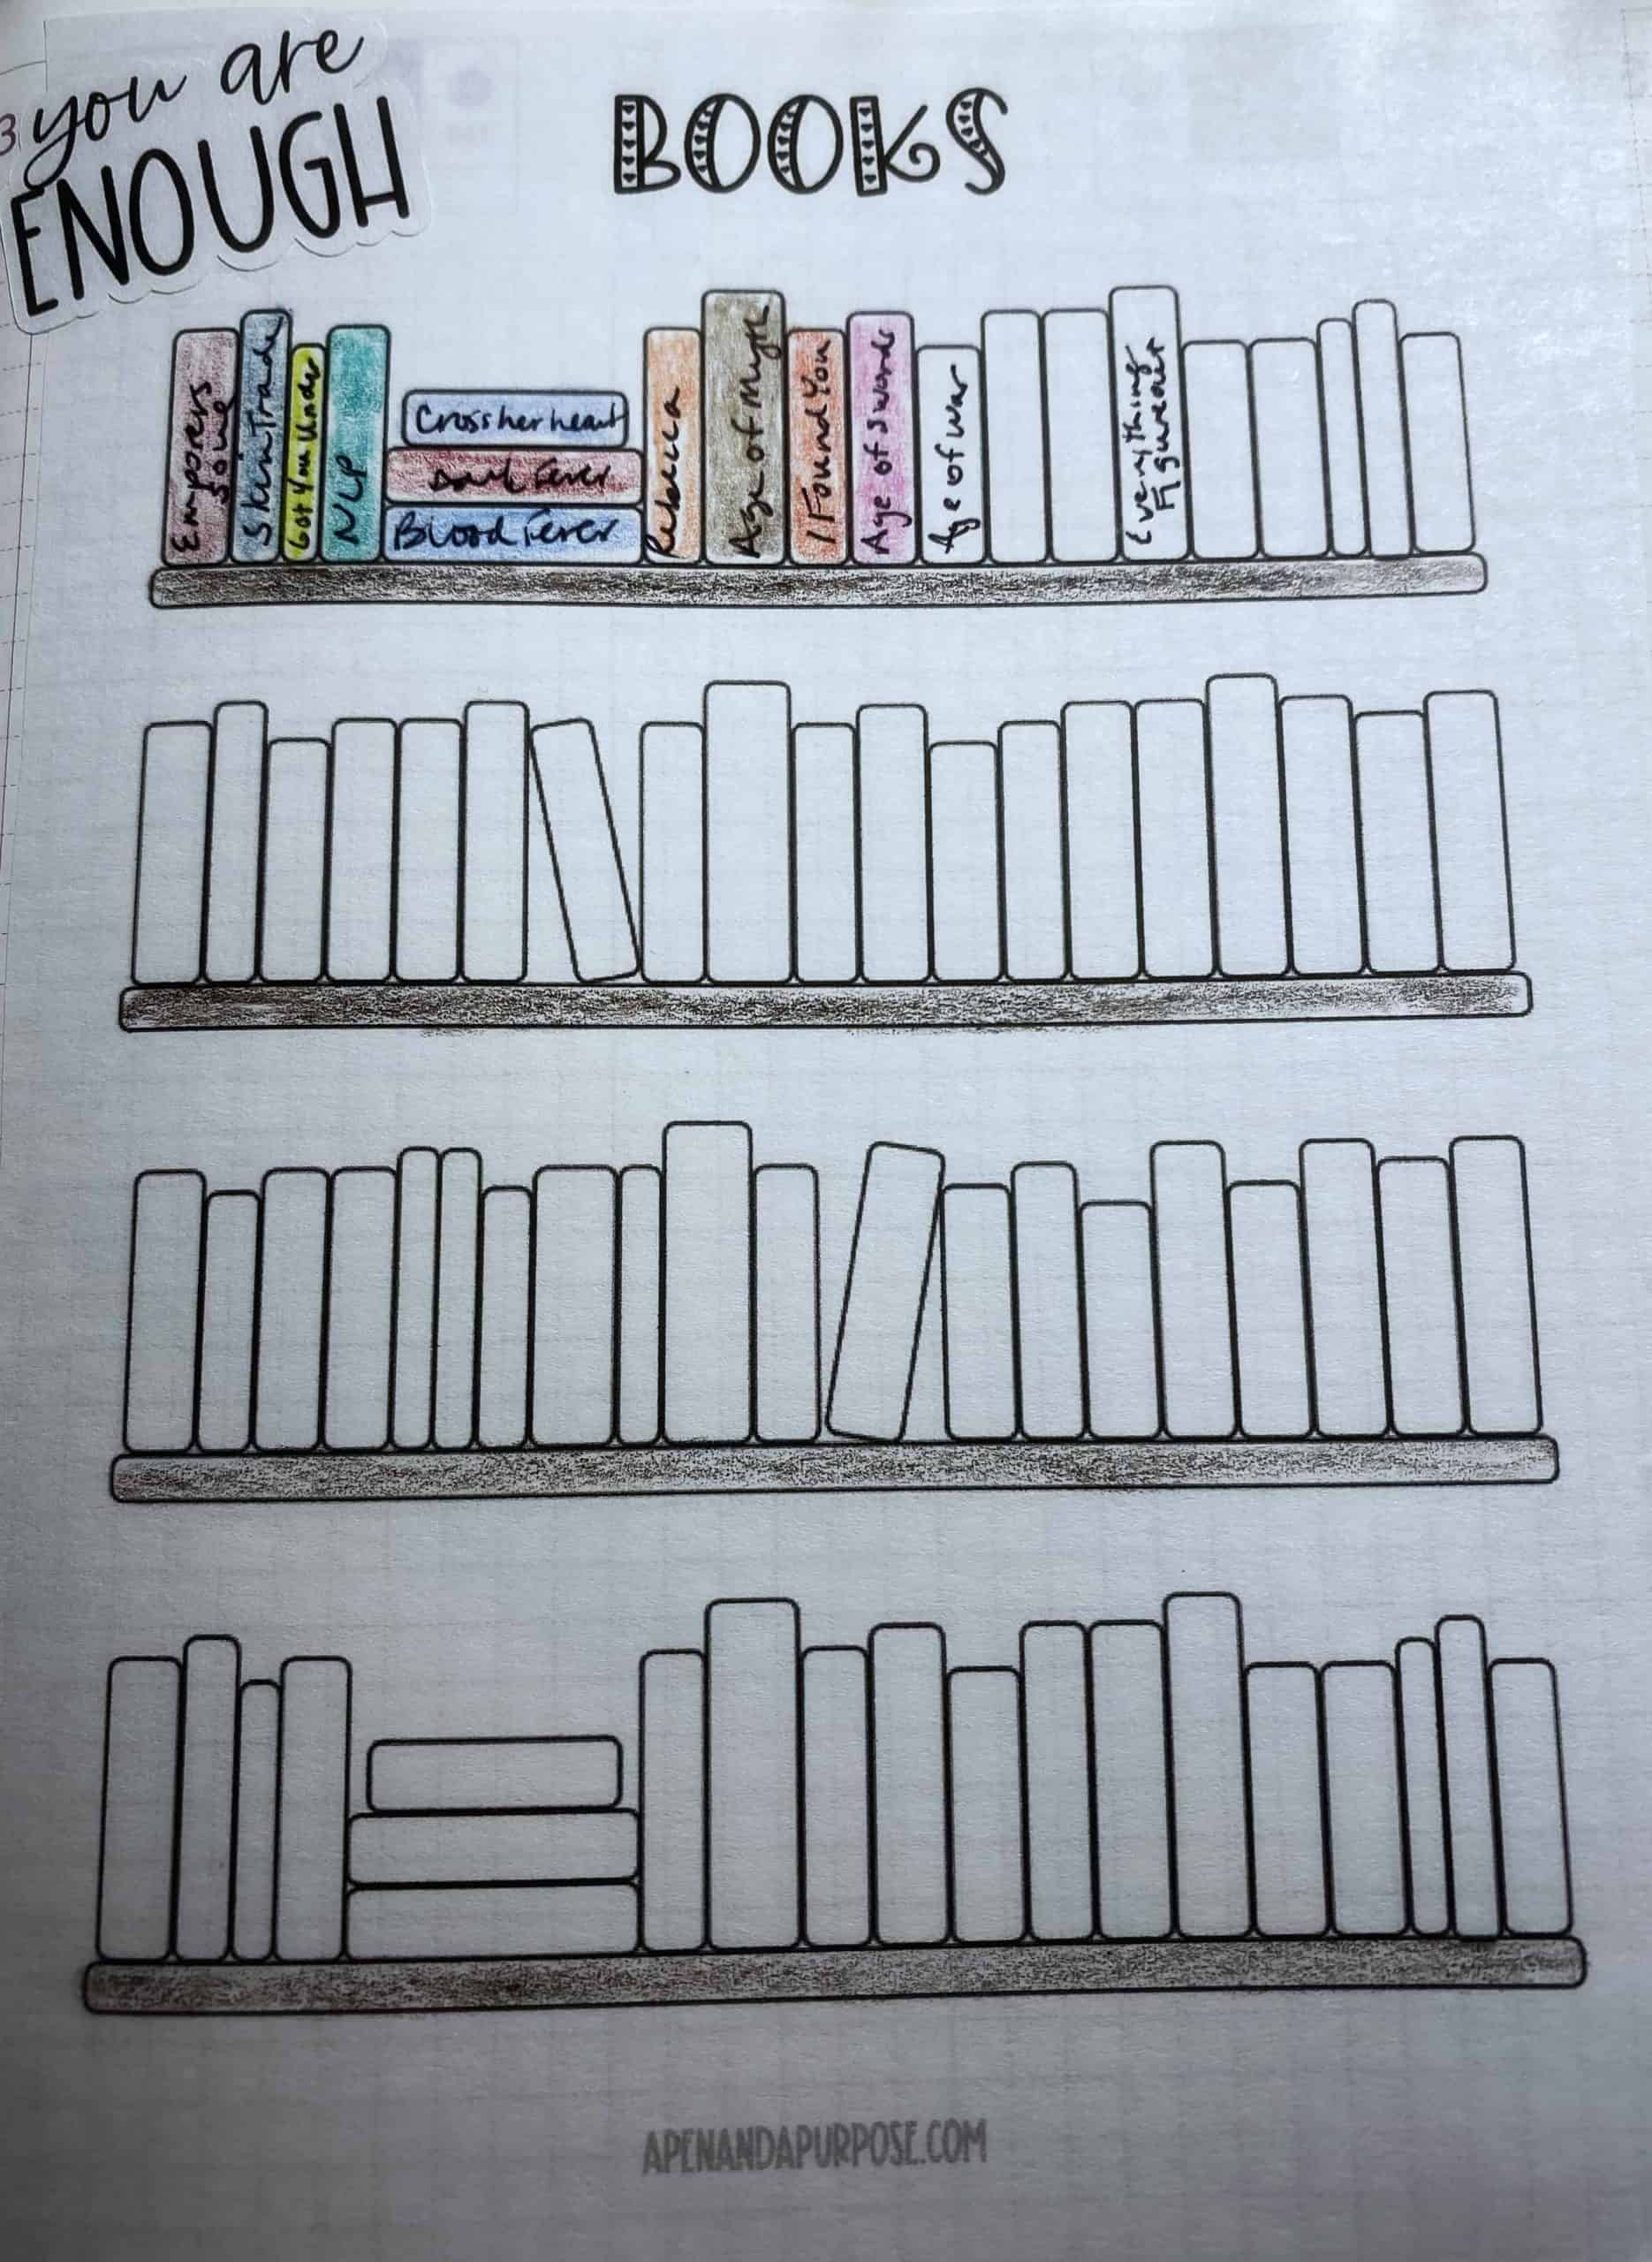 Book tracker printable page made into a sticker to track books in my planner